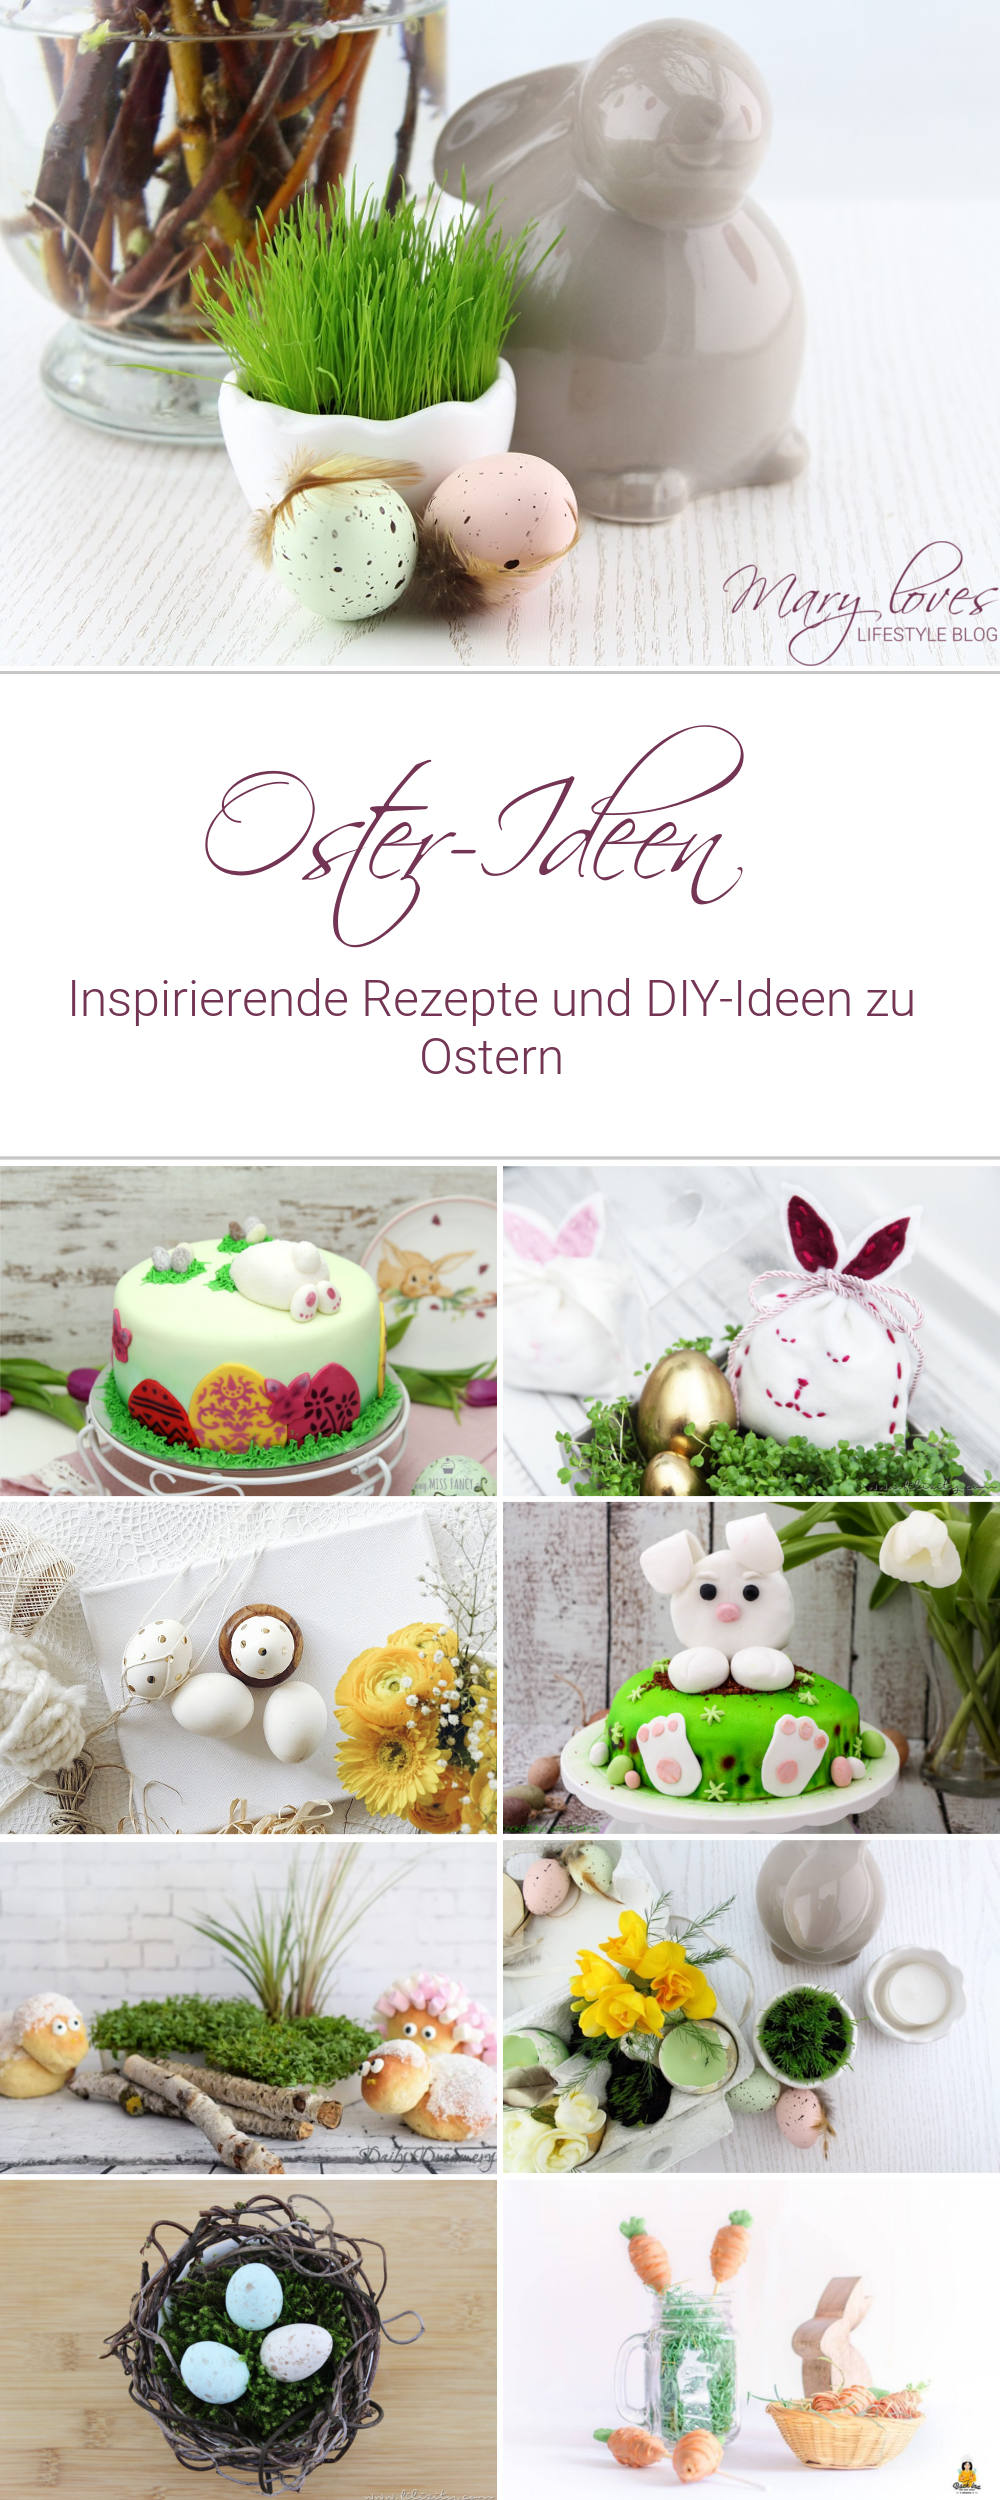 Pinterest - [Link Collection] Inspirierende Rezepte und Ideen zu Ostern - osteridee, osterrezepte, osteressen, osterfest, oster-diy, diy, rezept, do it yourself